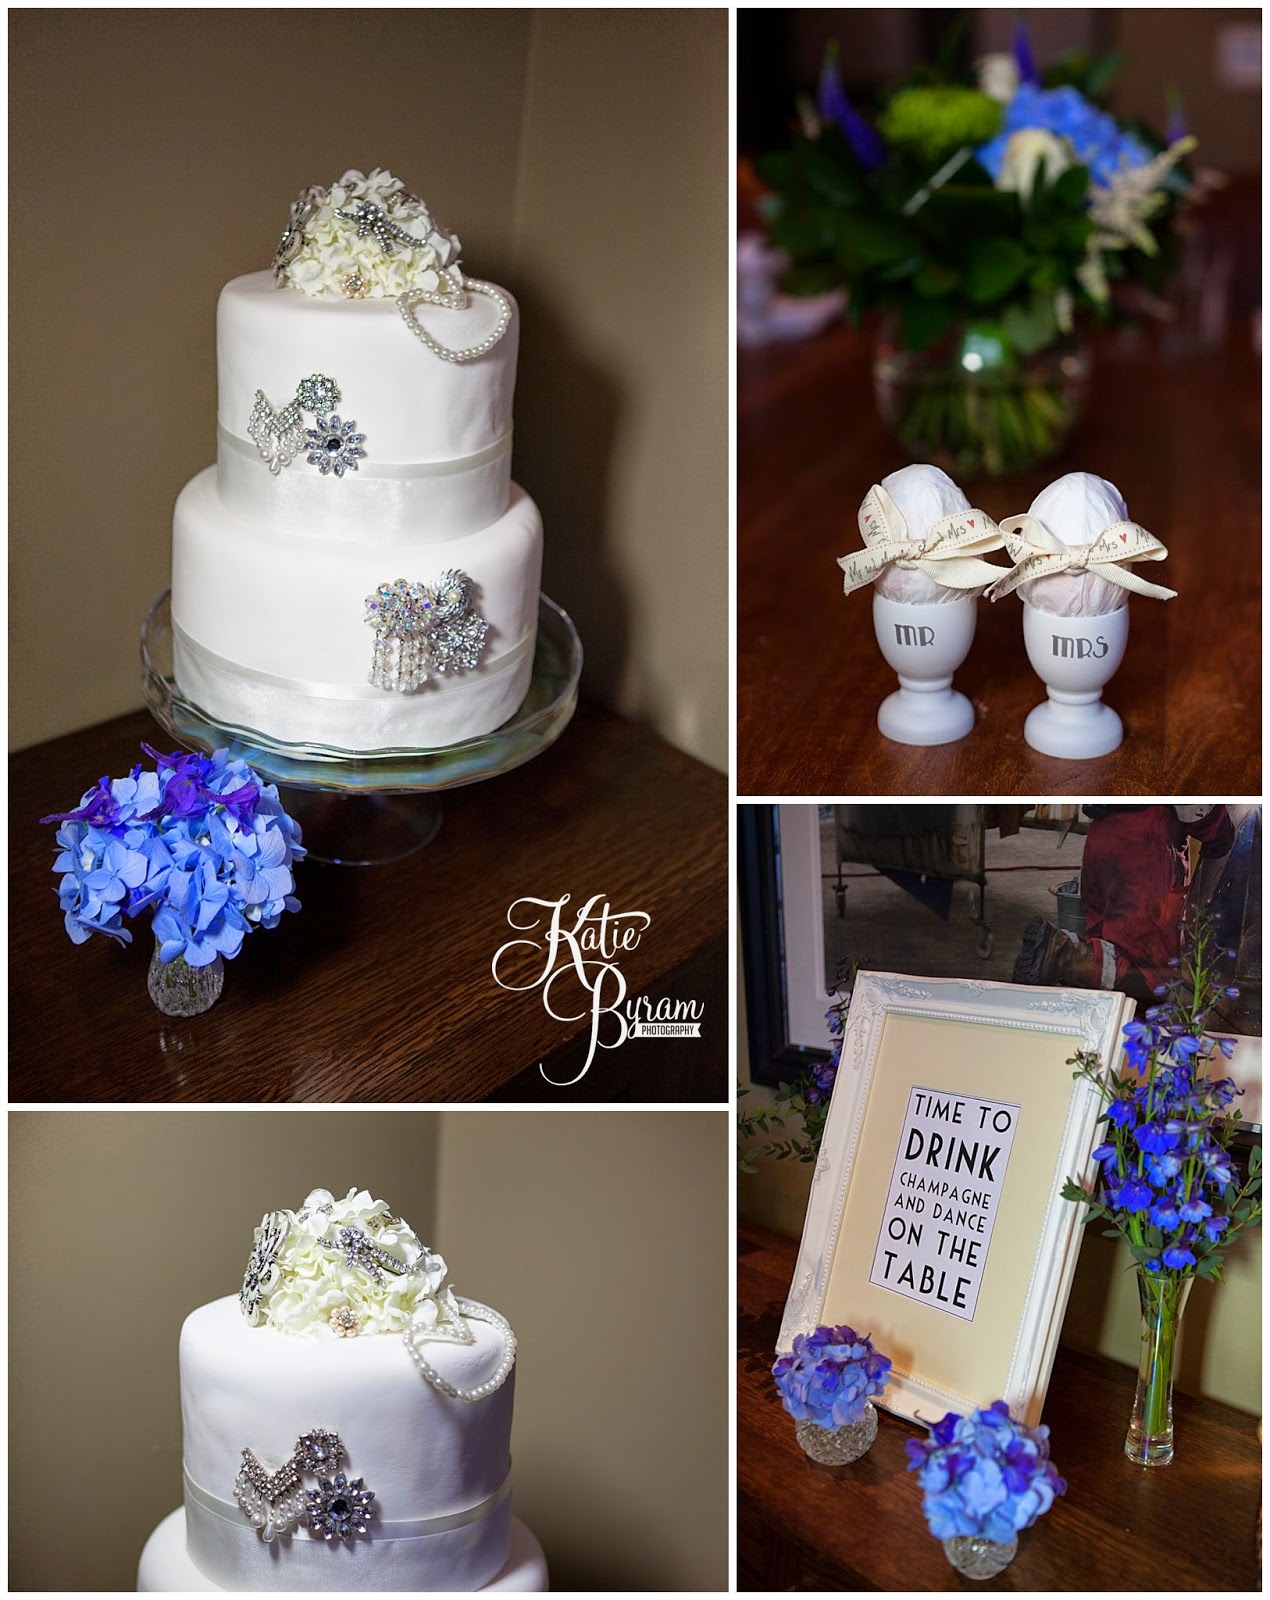 blue wedding flowers, vintage wedding cake, hotel du vin newcastle, hotel du vin wedding, hotel du vin wedding photographs, hotel du vin newcastle wedding photographs, vintage wedding, small wedding, katie byram photography, newcastle wedding venue, city wedding venue